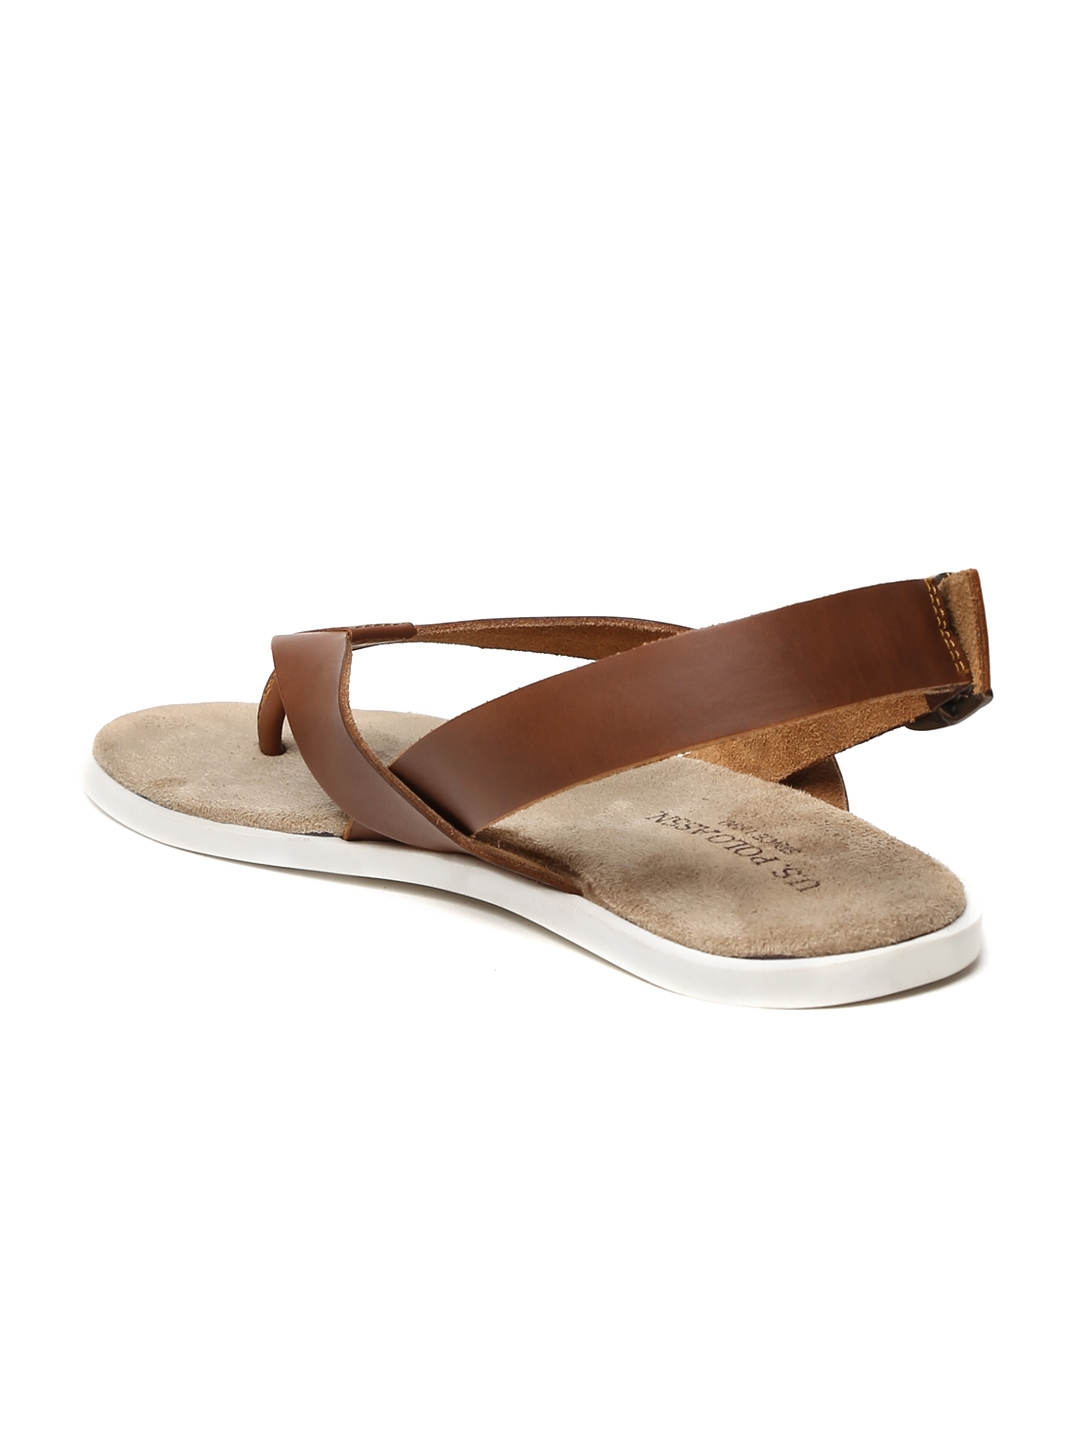 f06cd3550fad Buy U.S. Polo Assn. Men Brown Gavin Leather Sandals - Sandals for ...